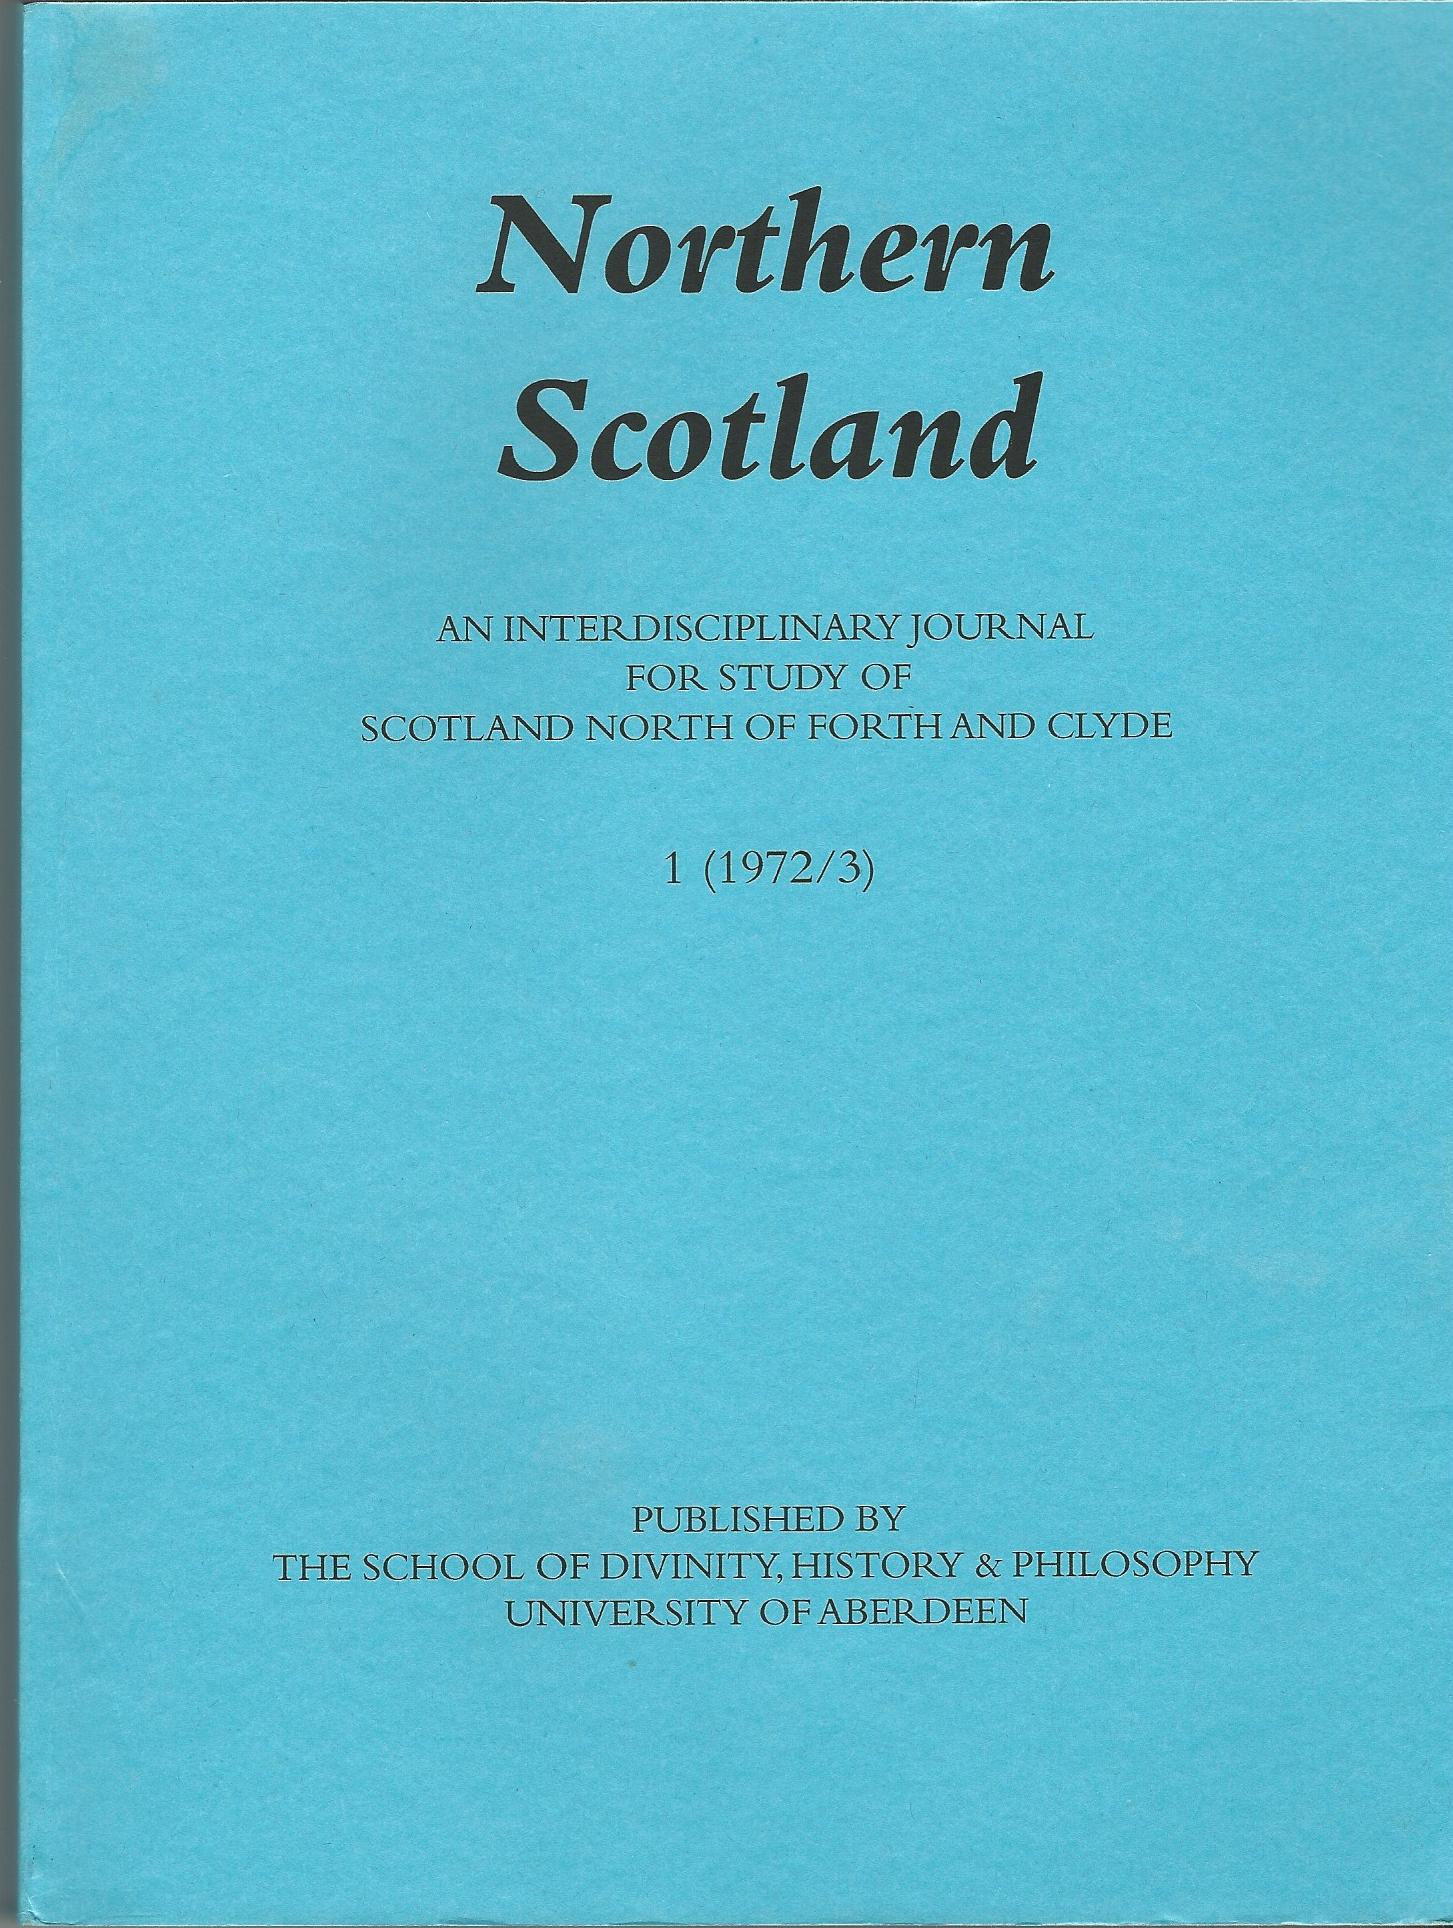 Image for Northern Scotland: An Interdisciplinary Journal for Study of Scotland North of Forth and Clyde 1972-1977 (2 Volumes)